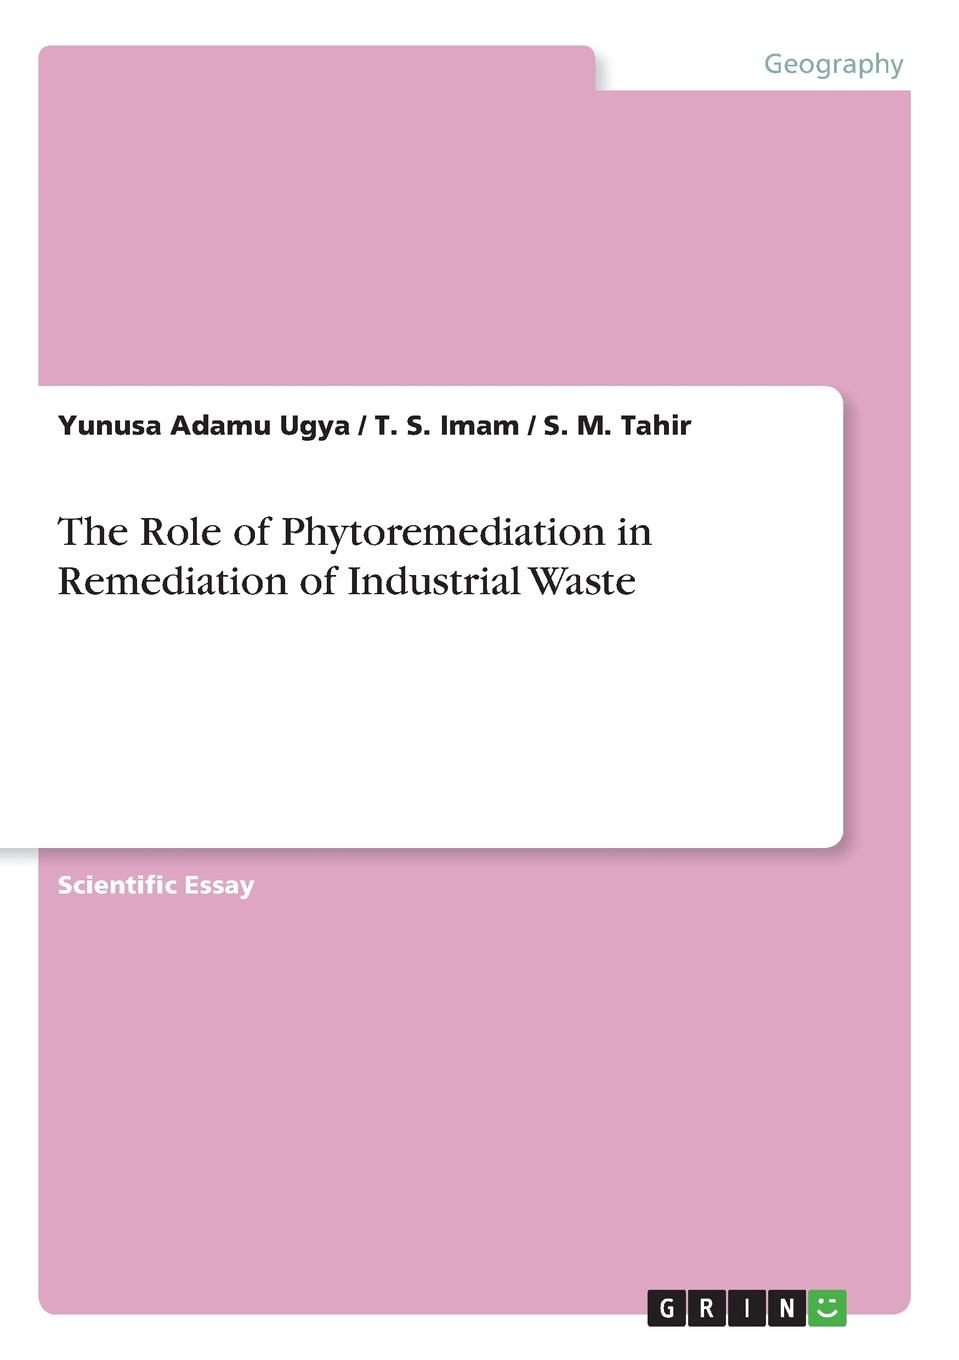 Yunusa Adamu Ugya, T. S. Imam, S. M. Tahir The Role of Phytoremediation in Remediation of Industrial Waste mj hammer hammer water and waste–water technology